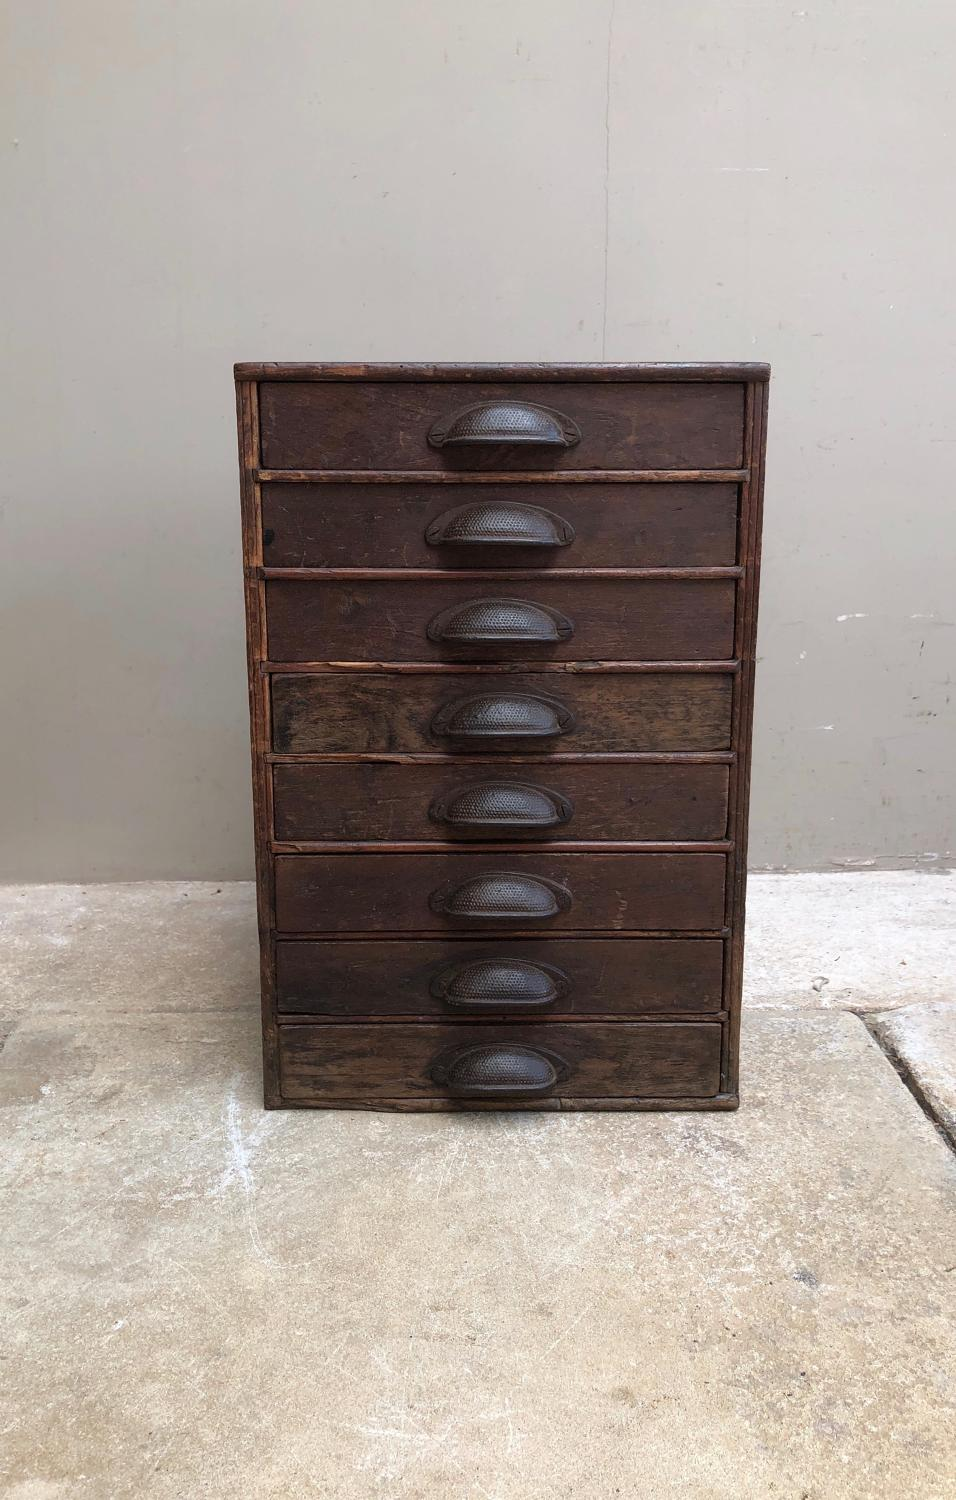 Early 20thC Pine Flight of Eight Drawers - Full Set Cast Handles